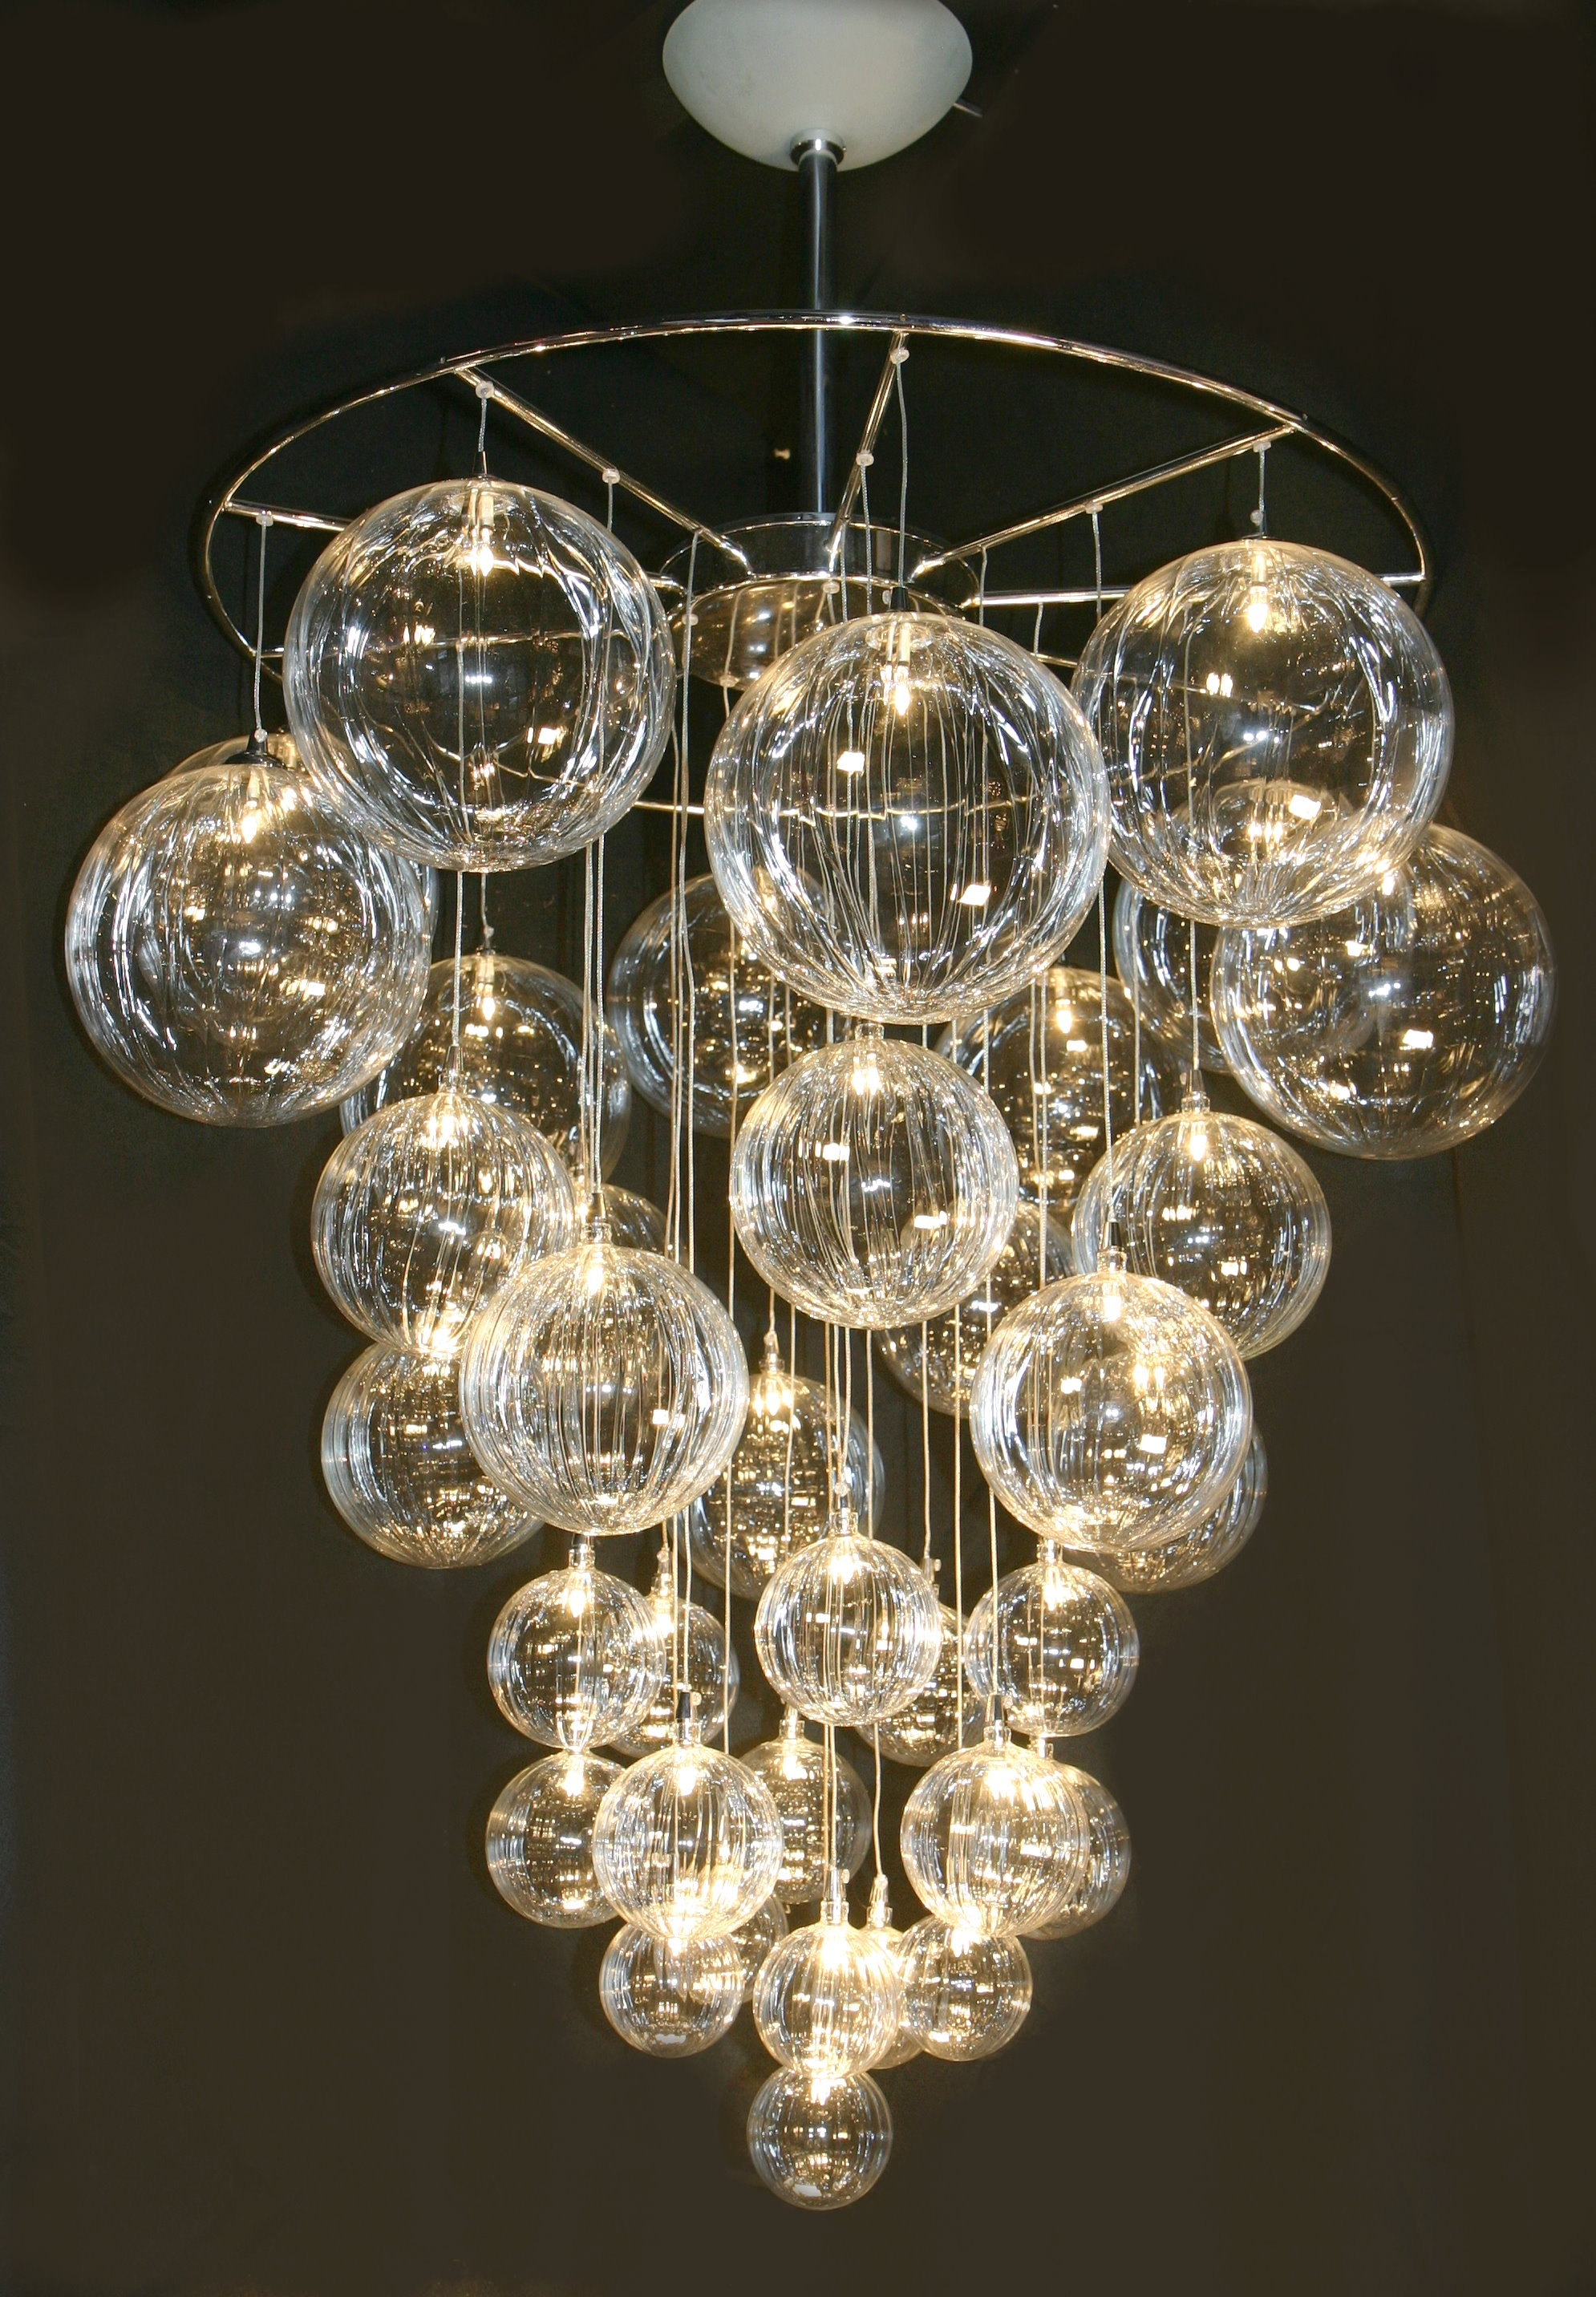 53 Modern Chandelier Lighting Modern Contemporary Crystal Pendant Throughout Contemporary Modern Chandelier (#2 of 12)